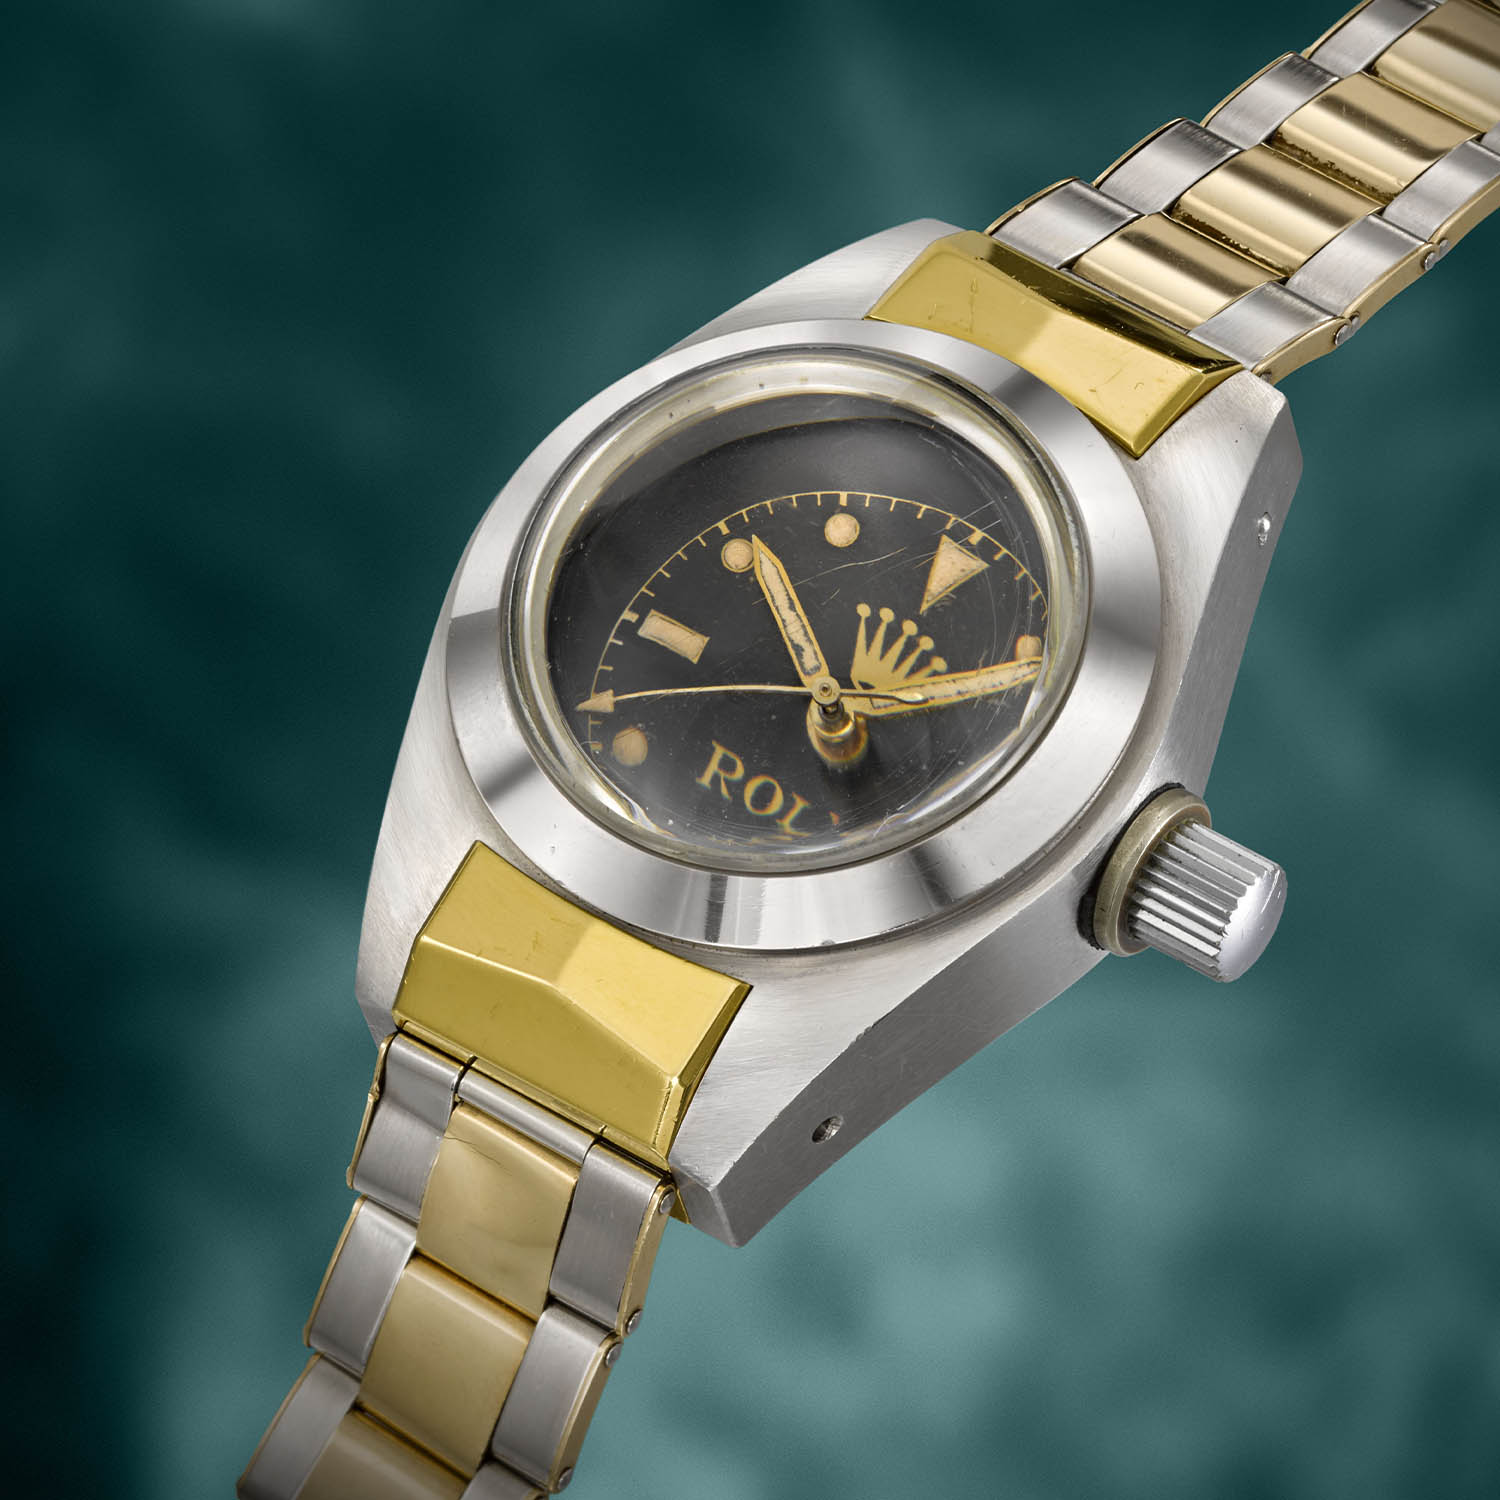 Christie's Announces Sale of The Rolex Deep Sea Special N°1 That Was Attached to Bathyscaphe Trieste in 1953